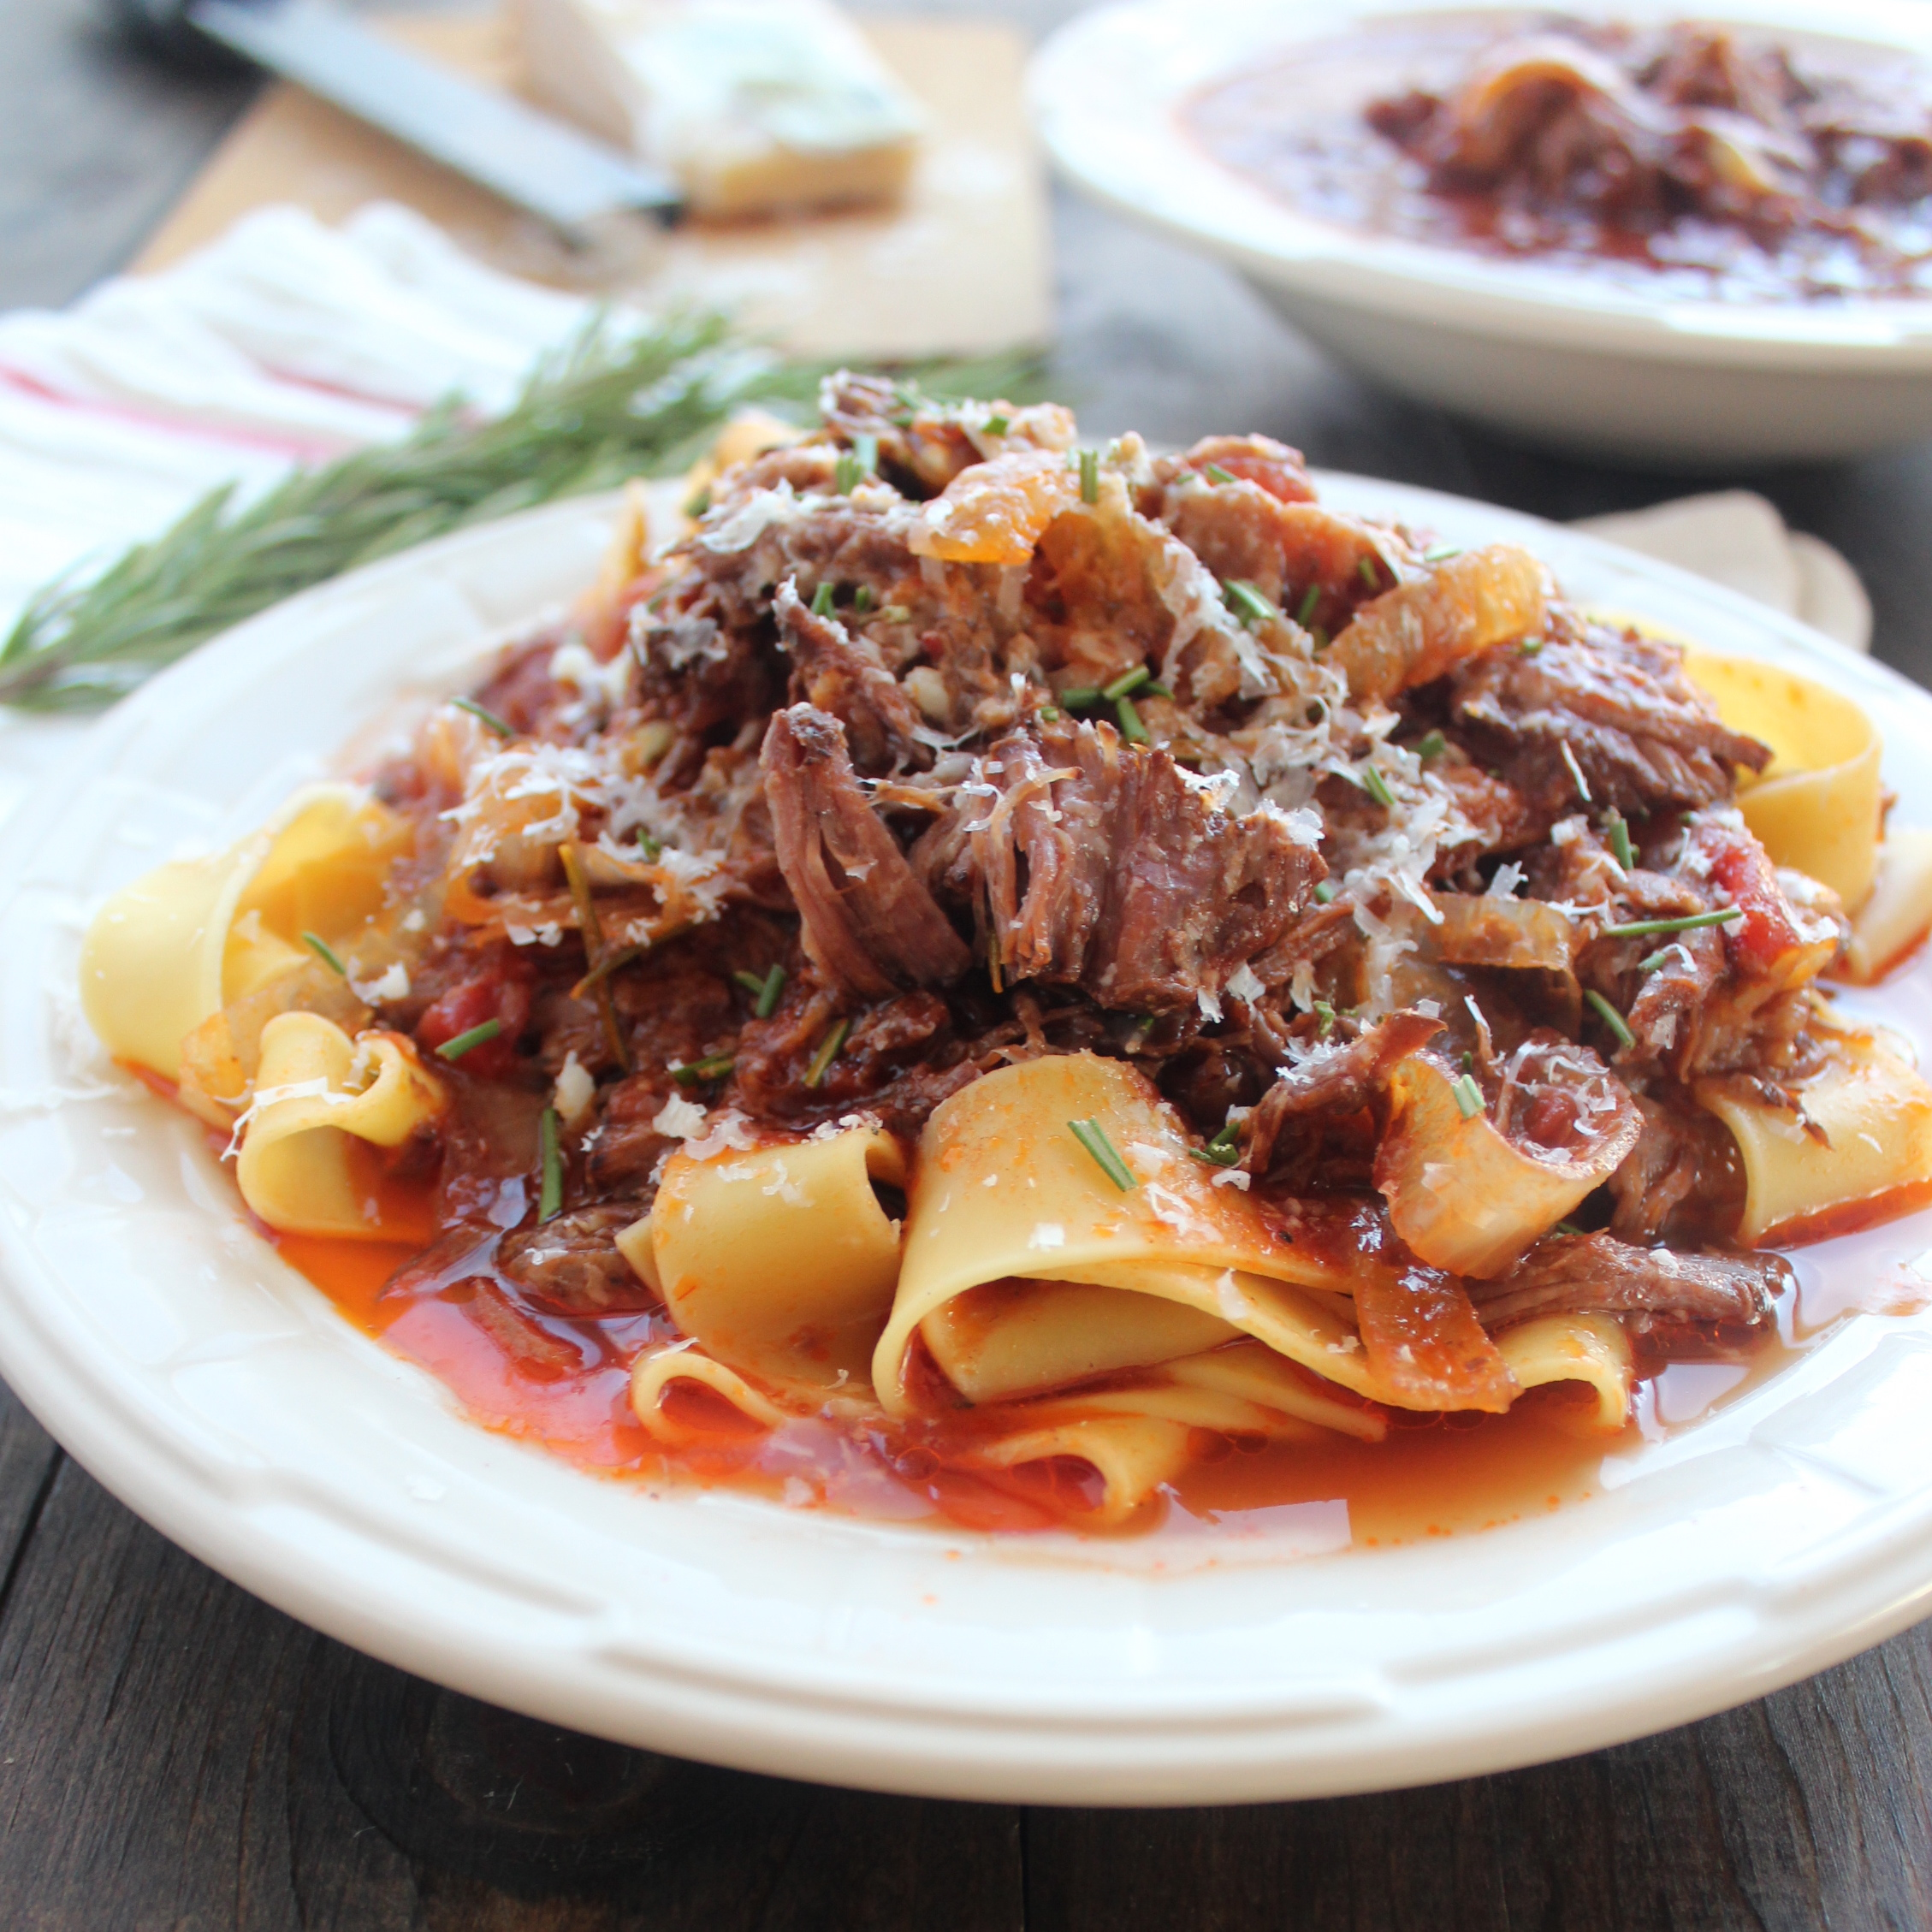 free beef ragu recipe has a ton of flavor with only a few, simple ...